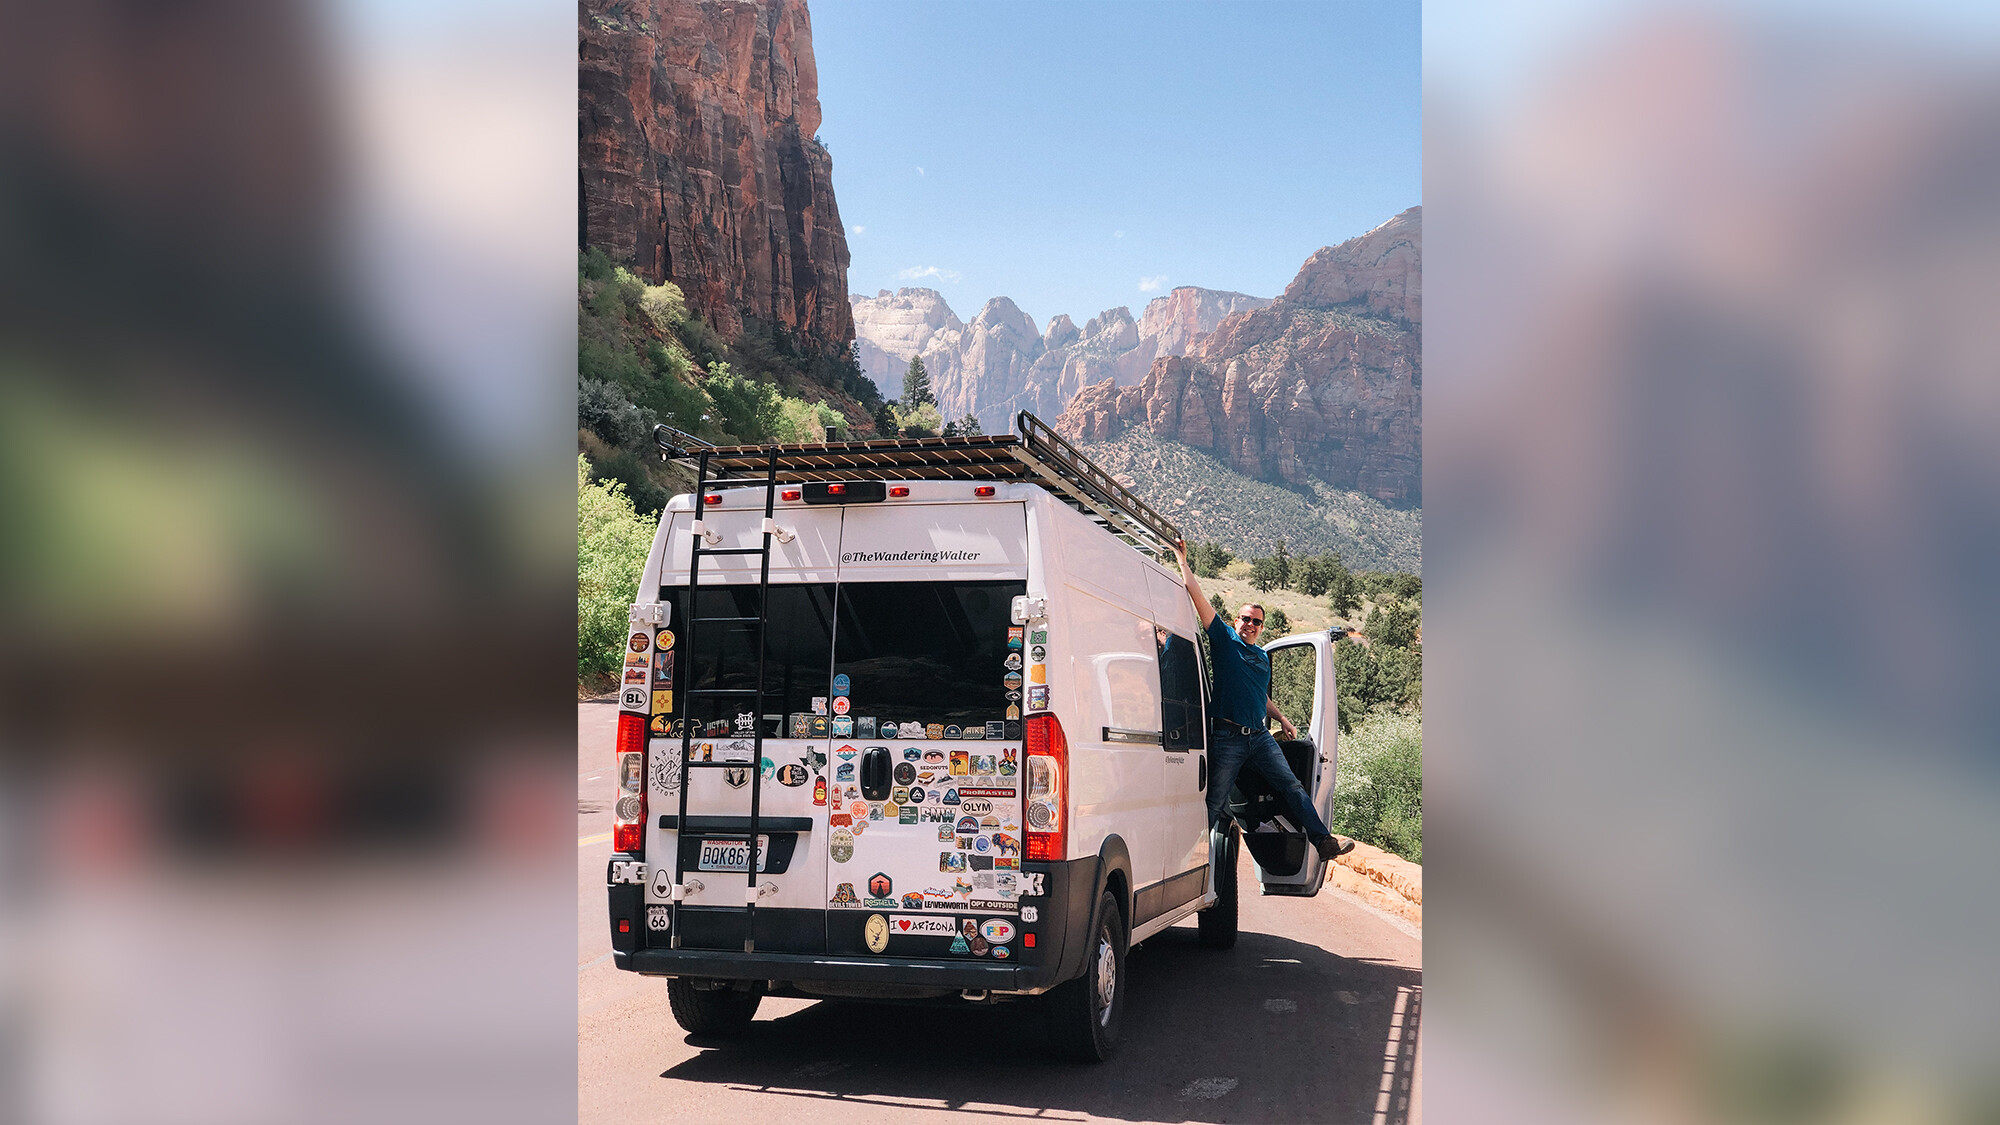 Van conversion businesses can't keep up with #vanlife demand